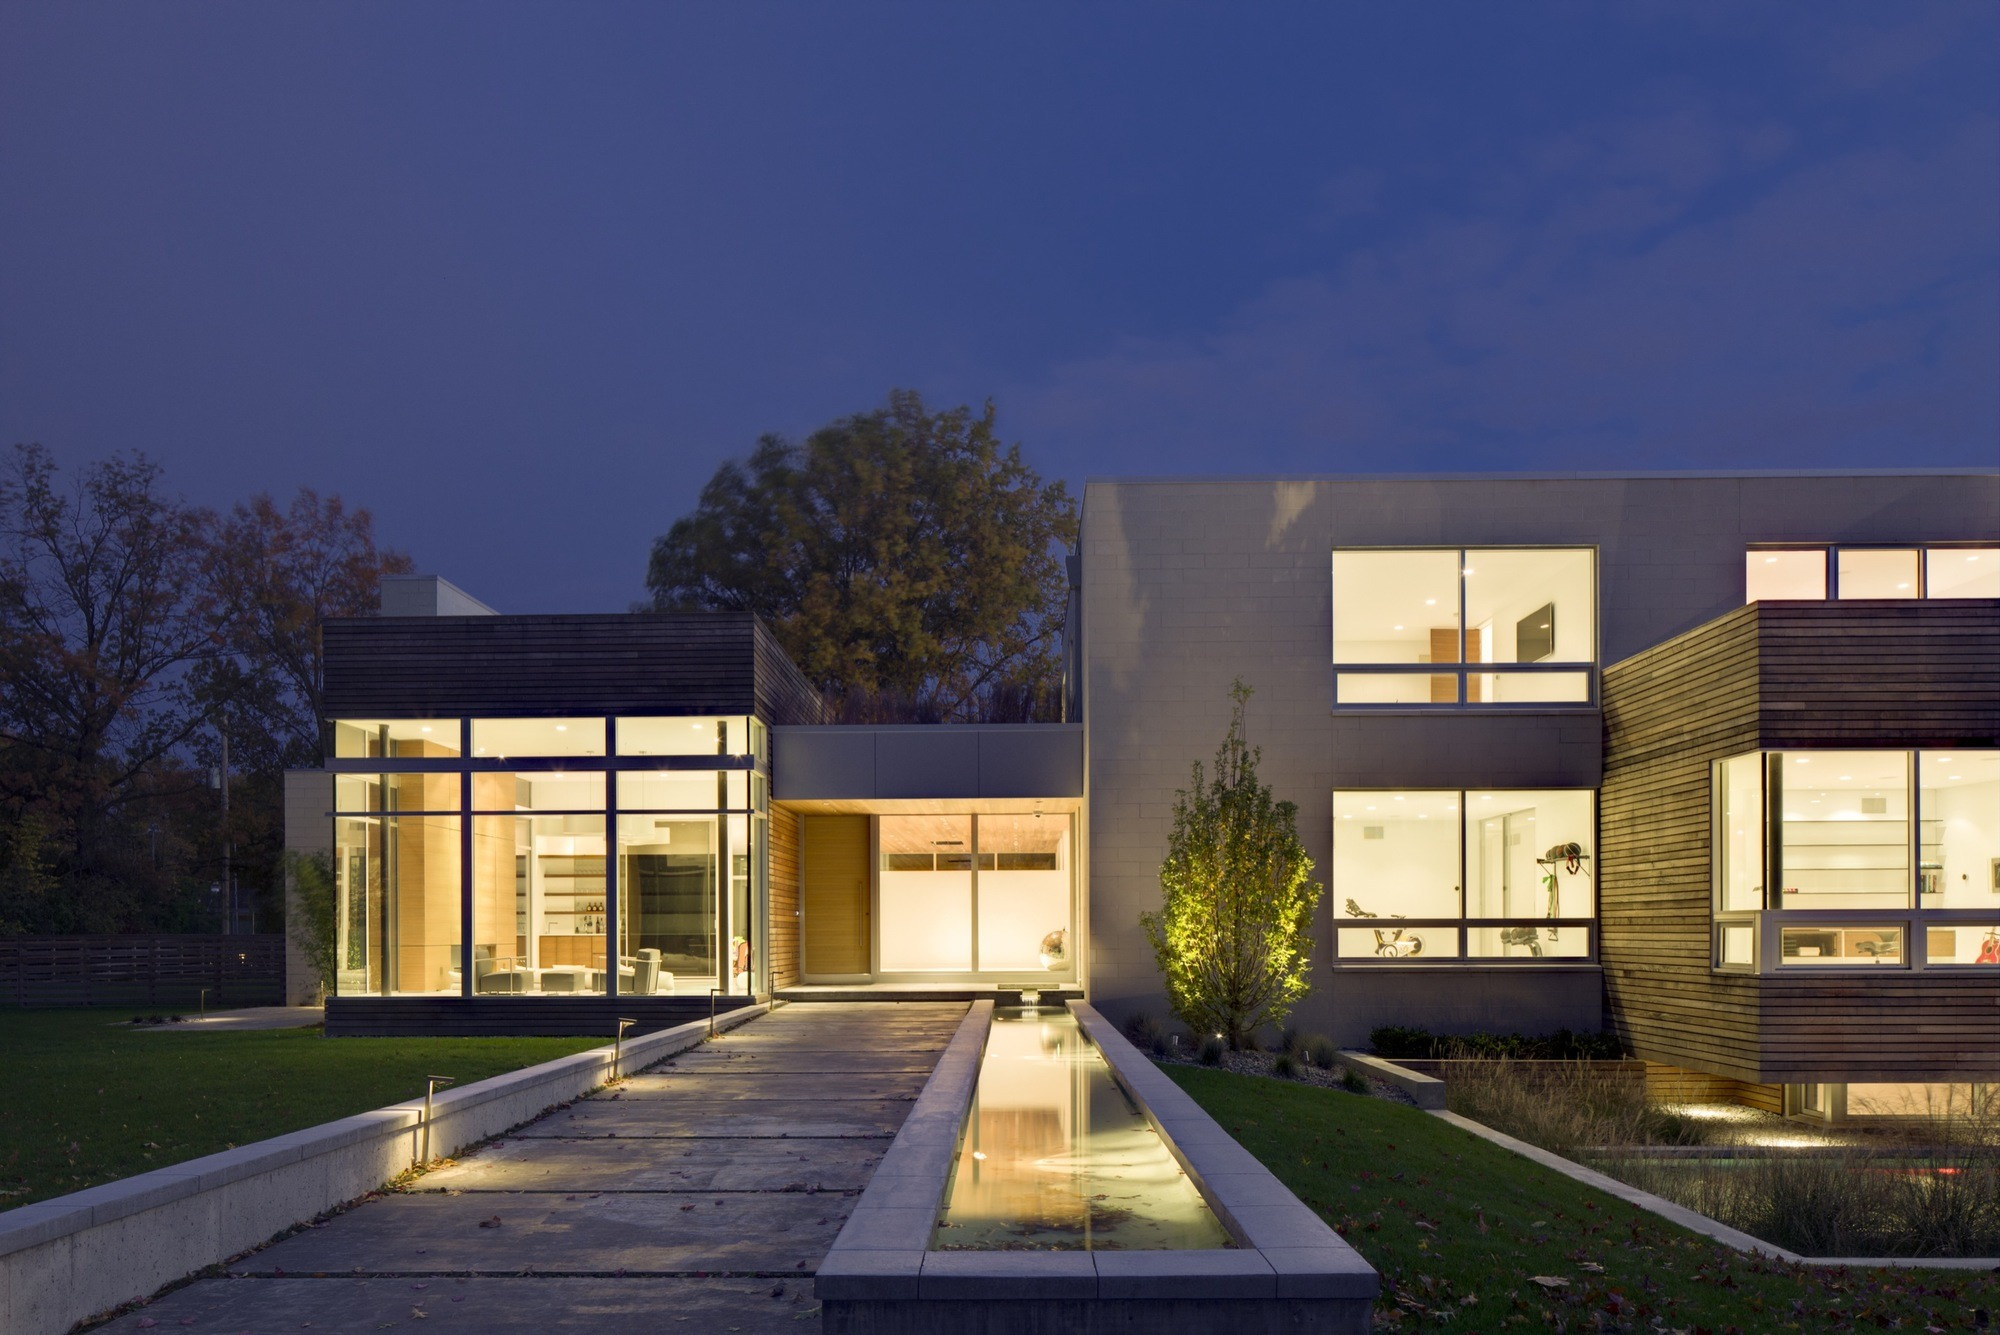 Shaker heights house by dimit architects karmatrendz for Building exterior lighting design